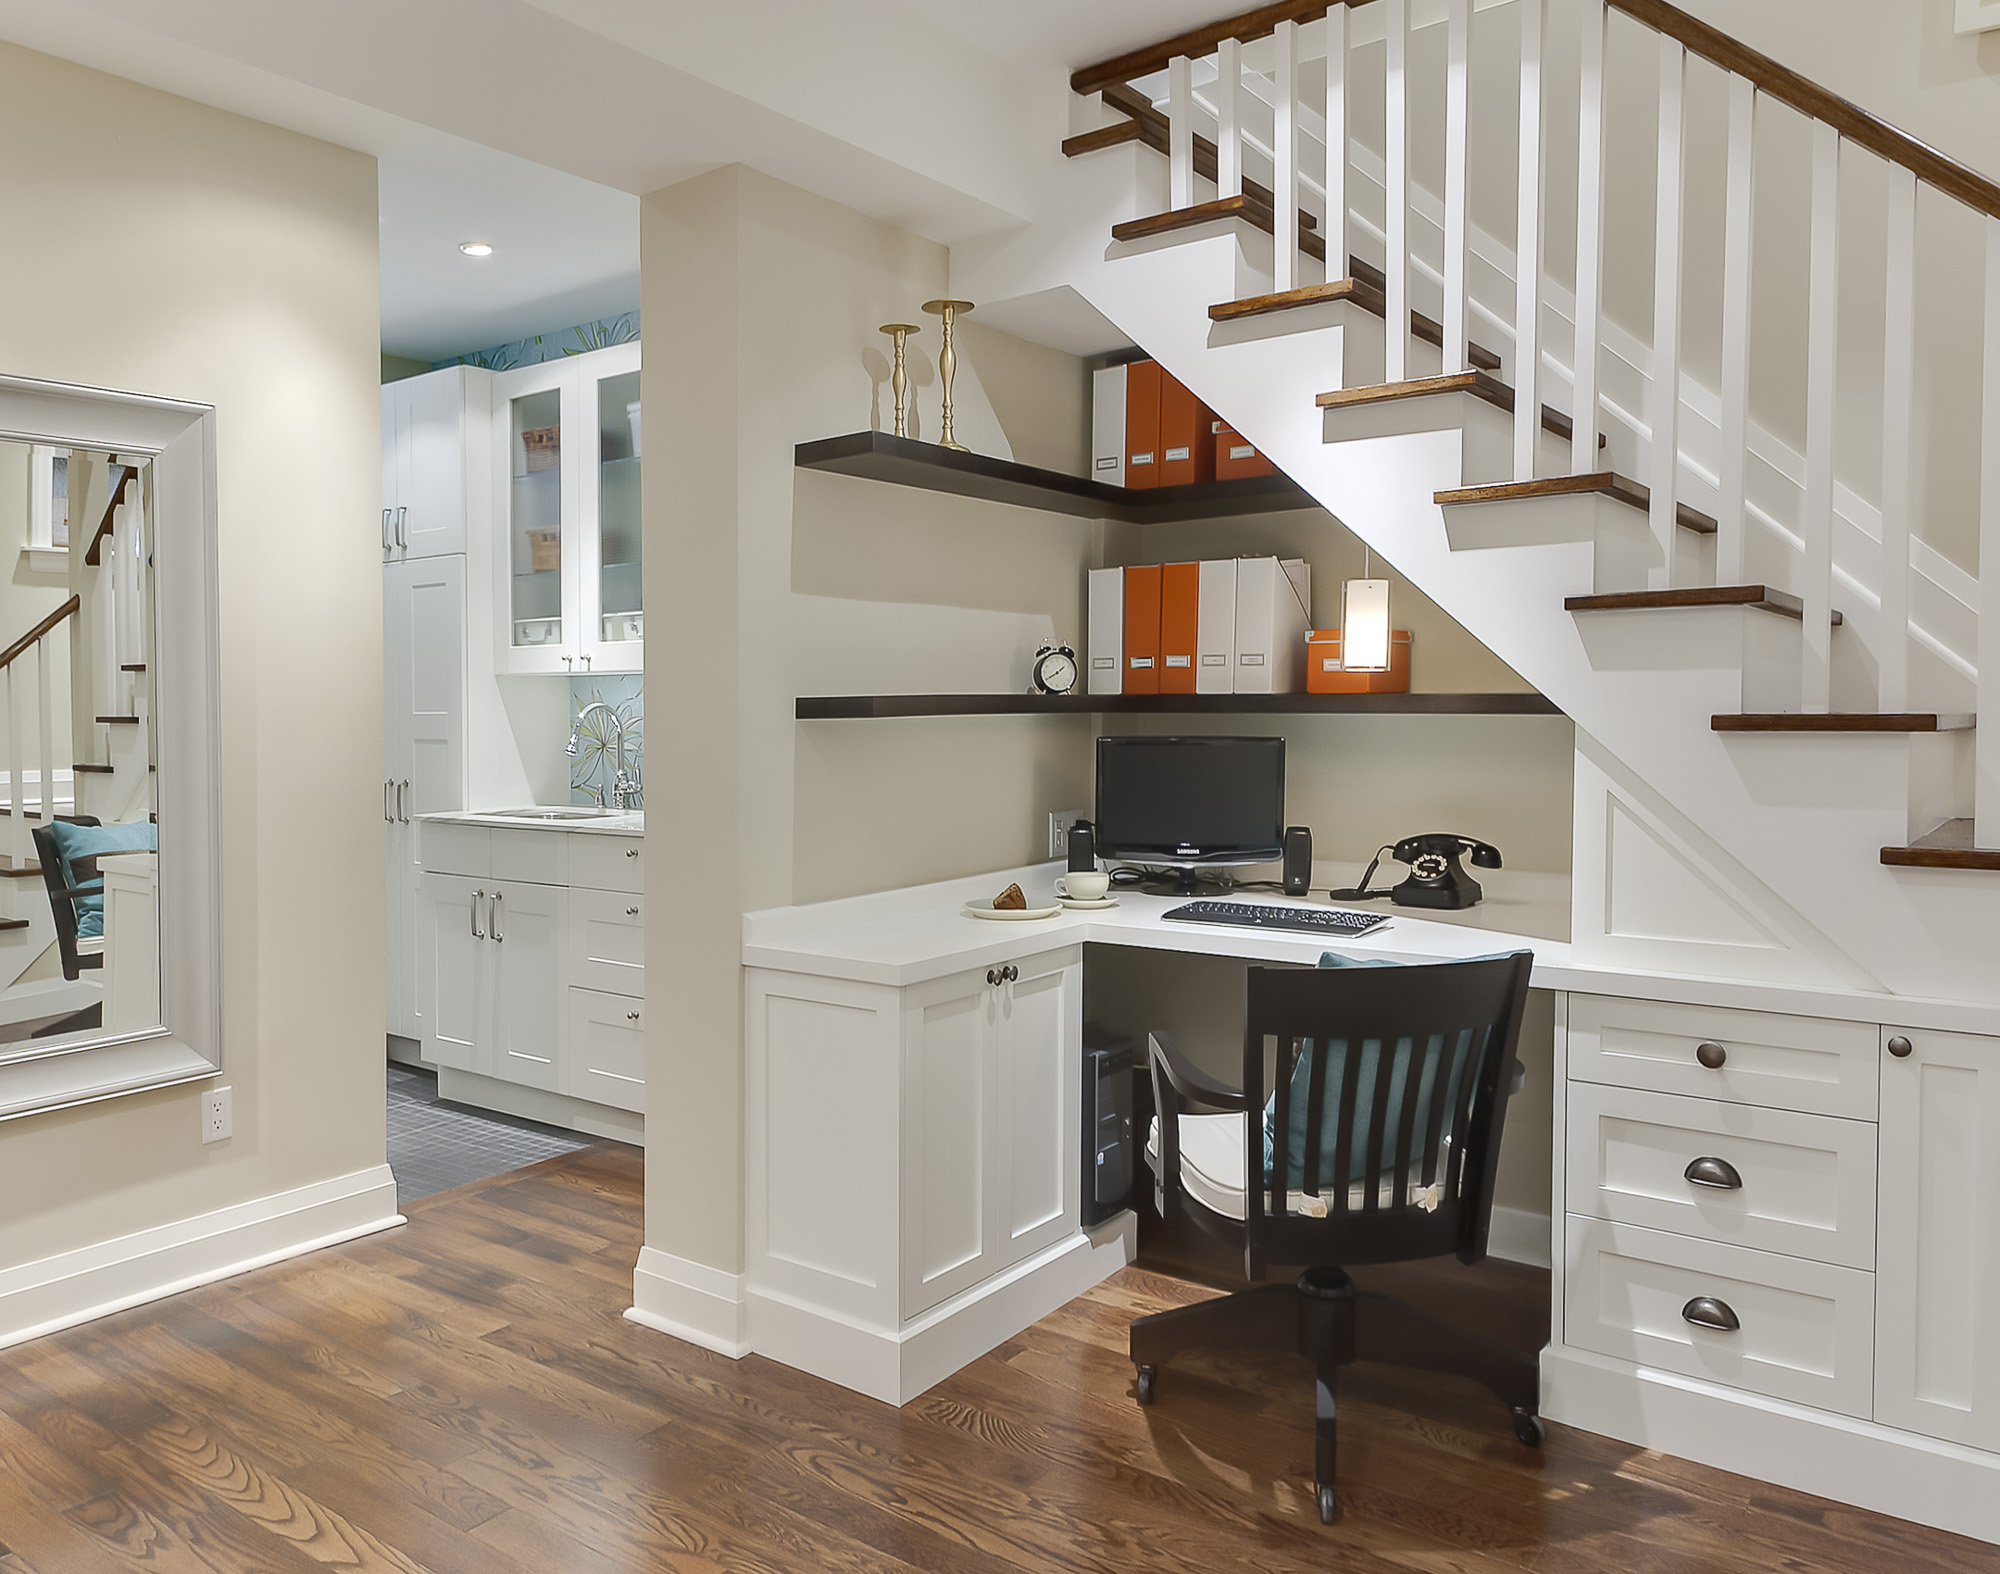 Fantastic Step Up Ways To Utilize Space Under Your Stairs Centerpiece Home Largest Home Design Picture Inspirations Pitcheantrous